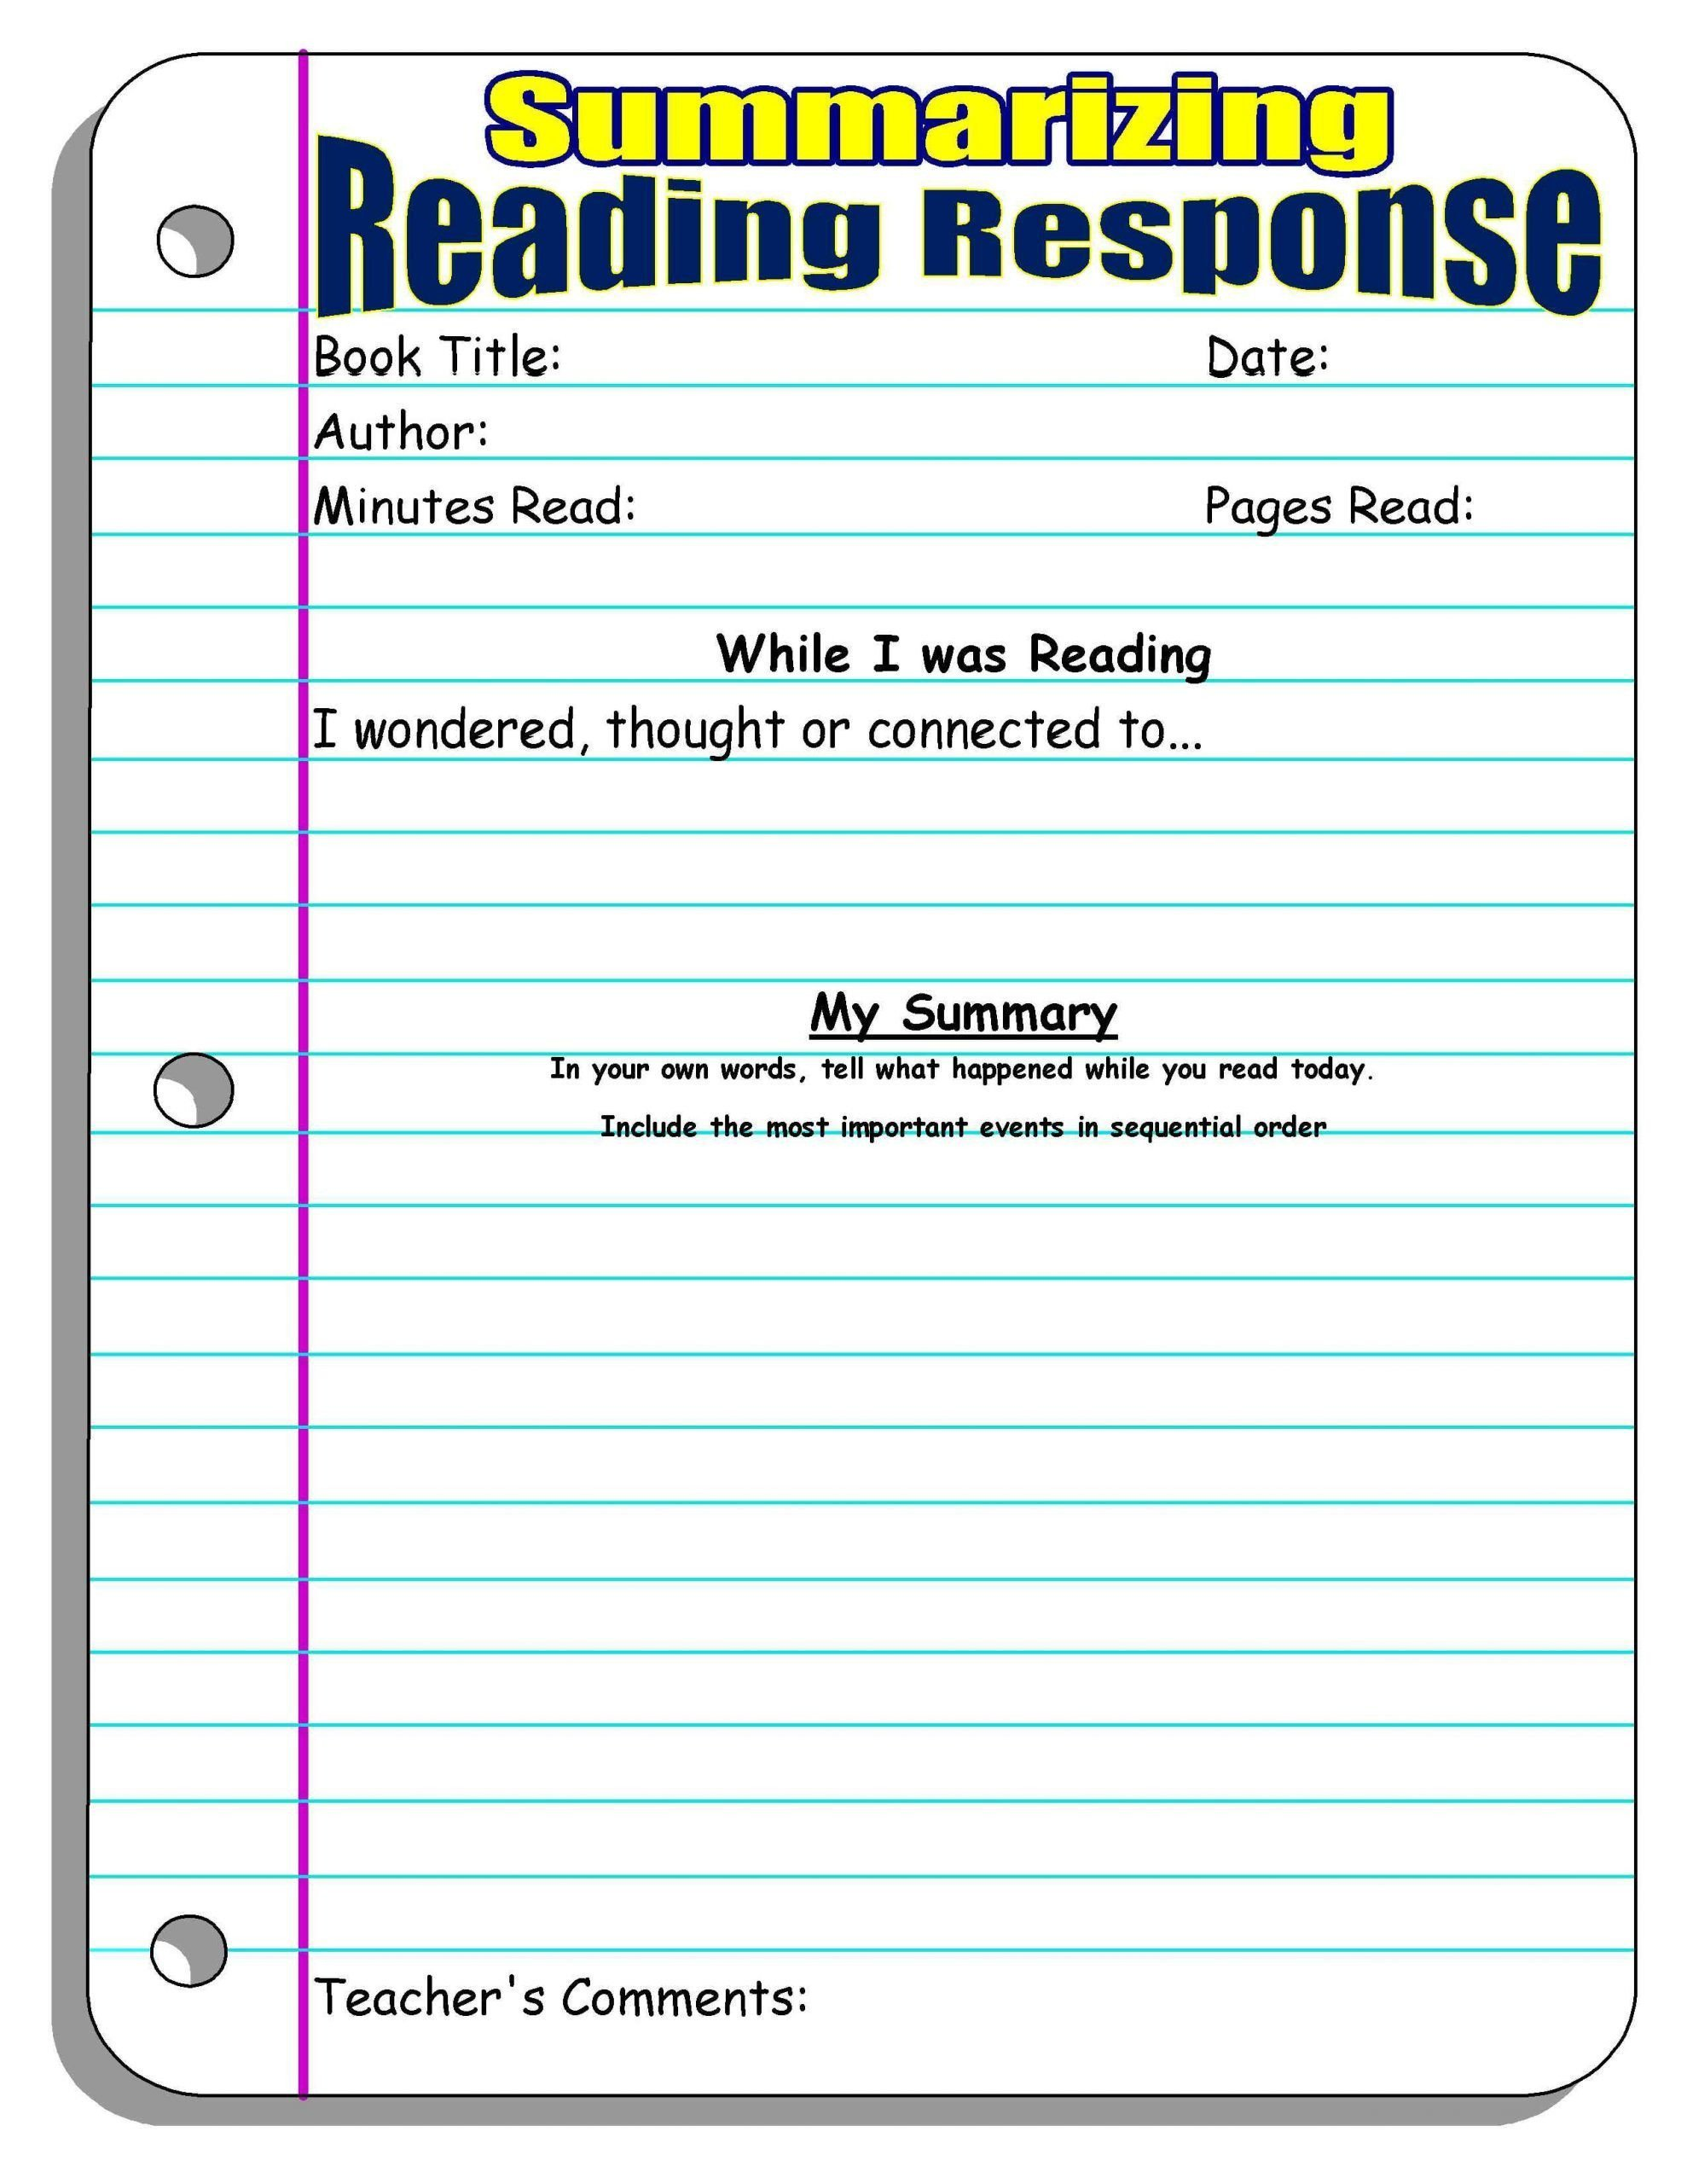 6th grade summarizing worksheets worksheet ideas reading response summarizing worksheet of 6th grade summarizing worksheets